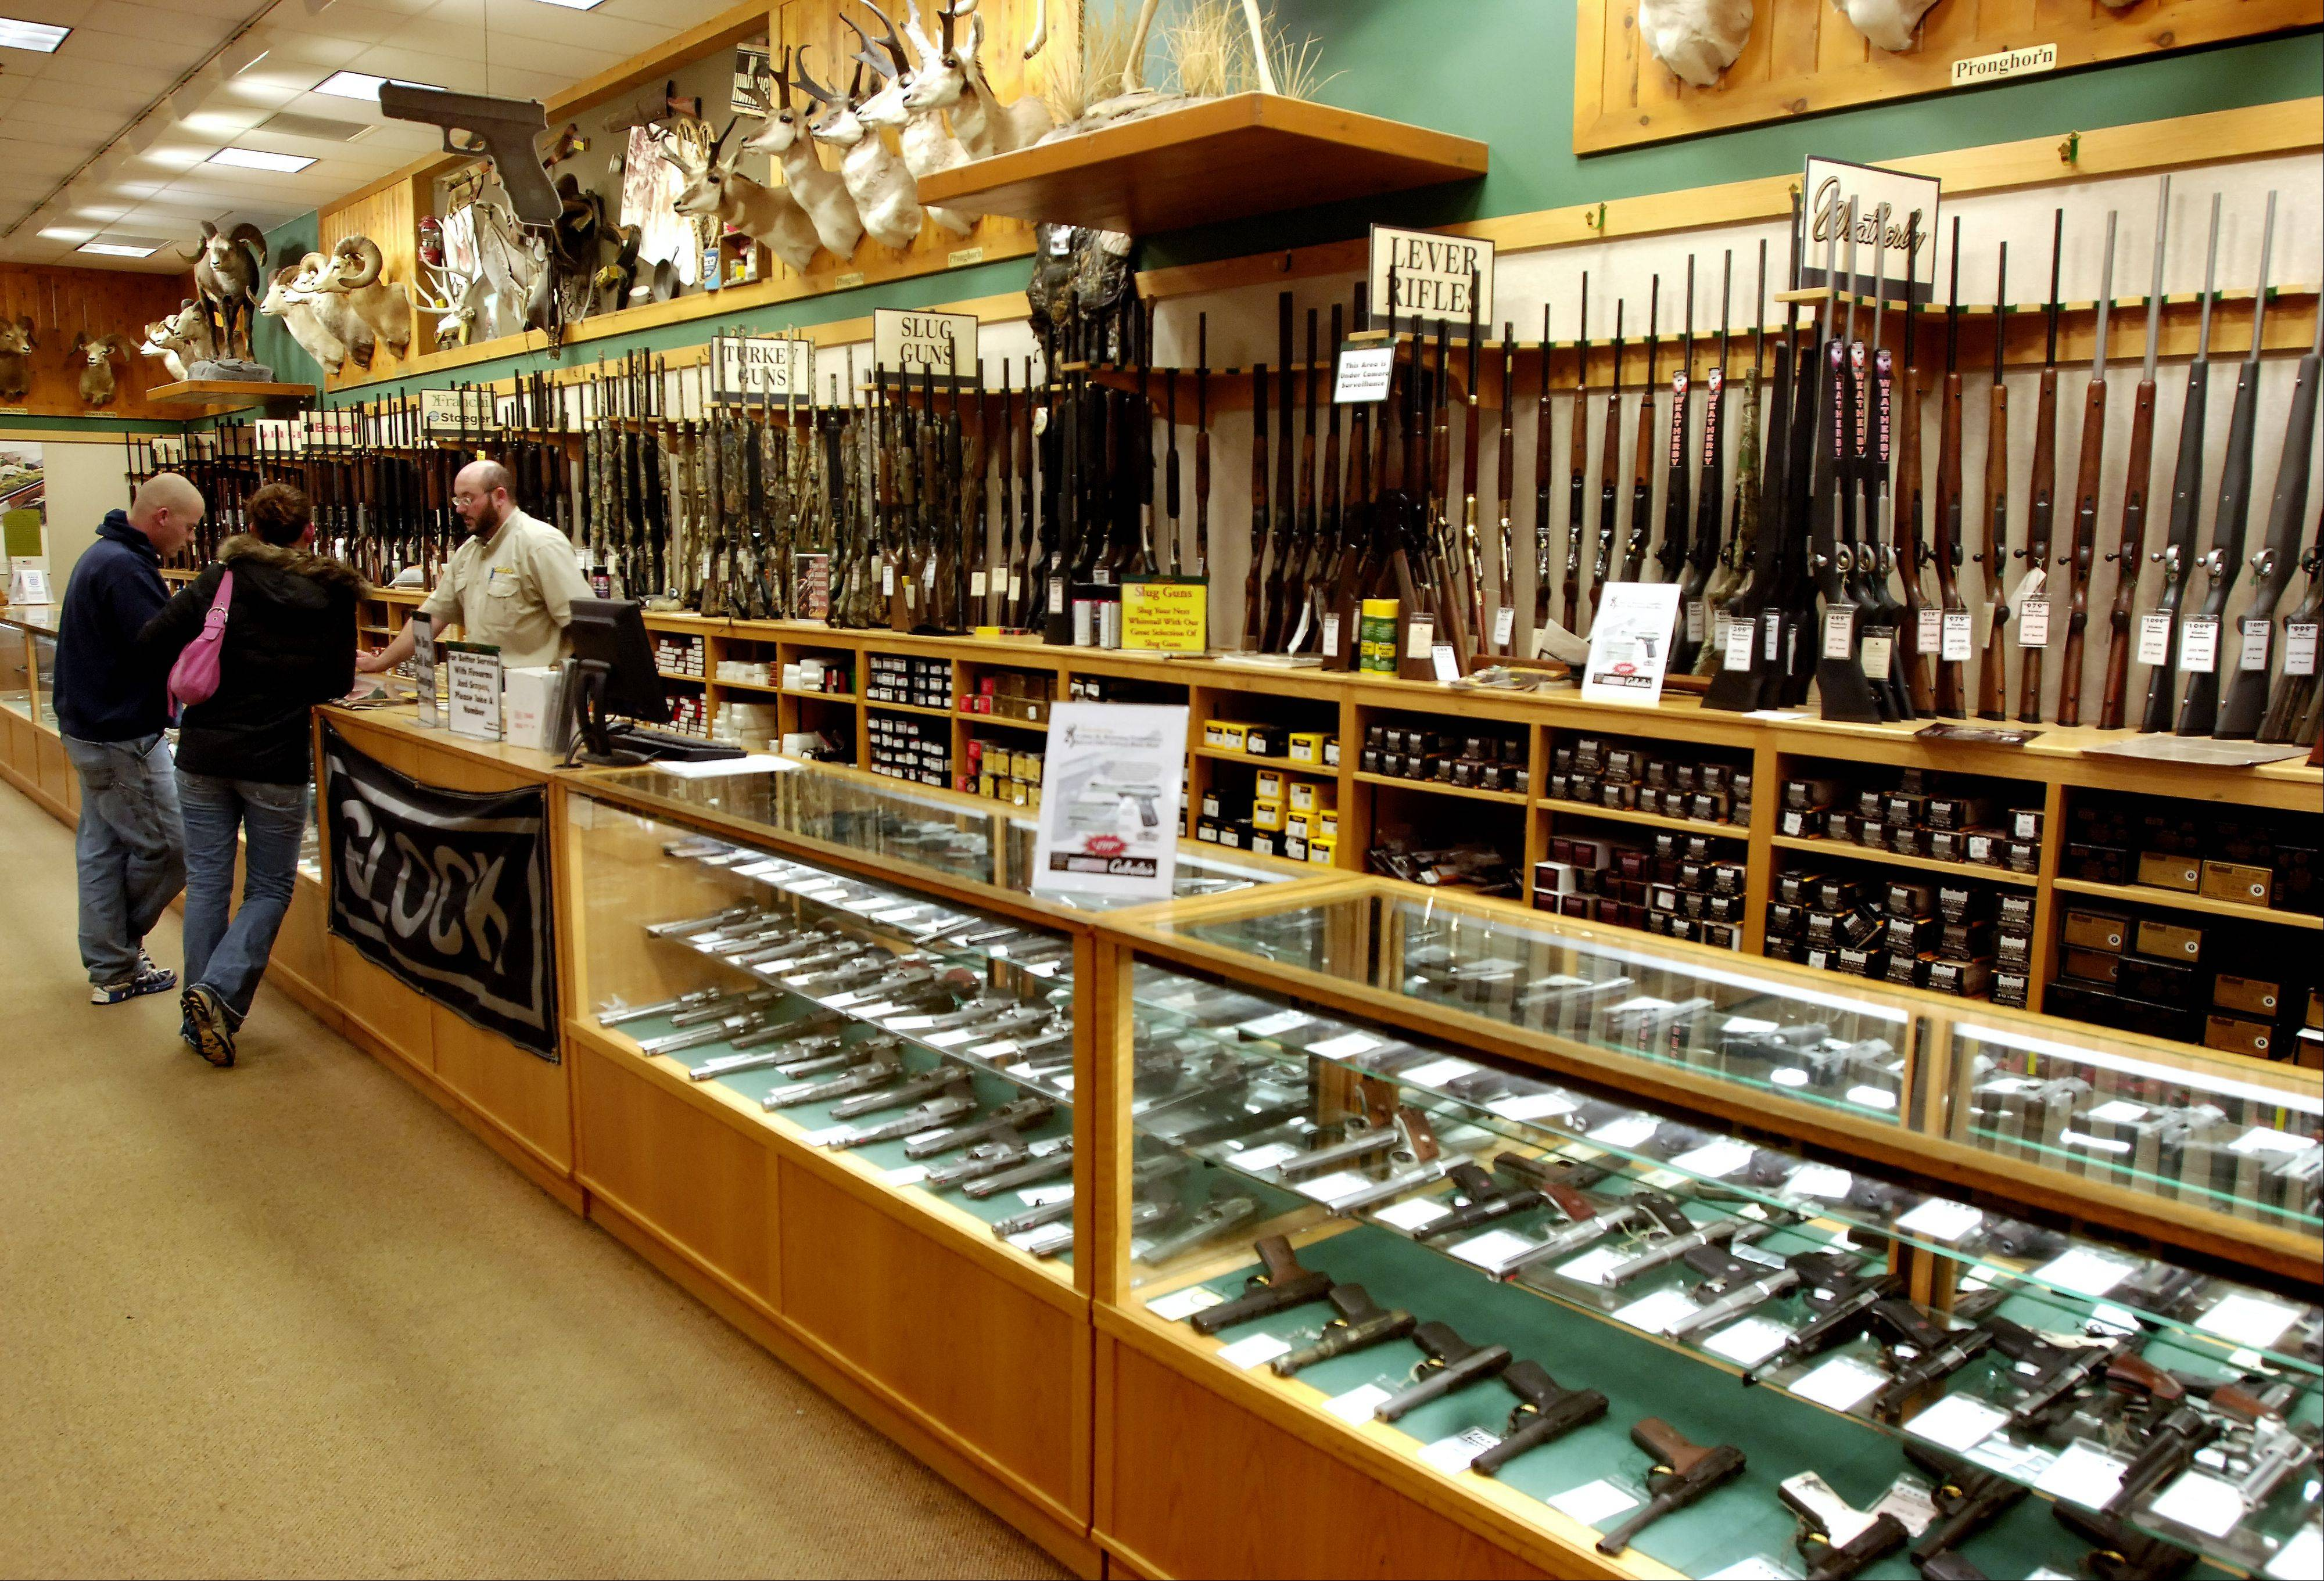 Illinois gun sellers say the rush to buy firearms since last Friday's school shootings in Connecticut appears to be about self-defense -- though many buyers already own guns and appear to be adding to their collections amid talk of tougher restrictions on gun ownership.